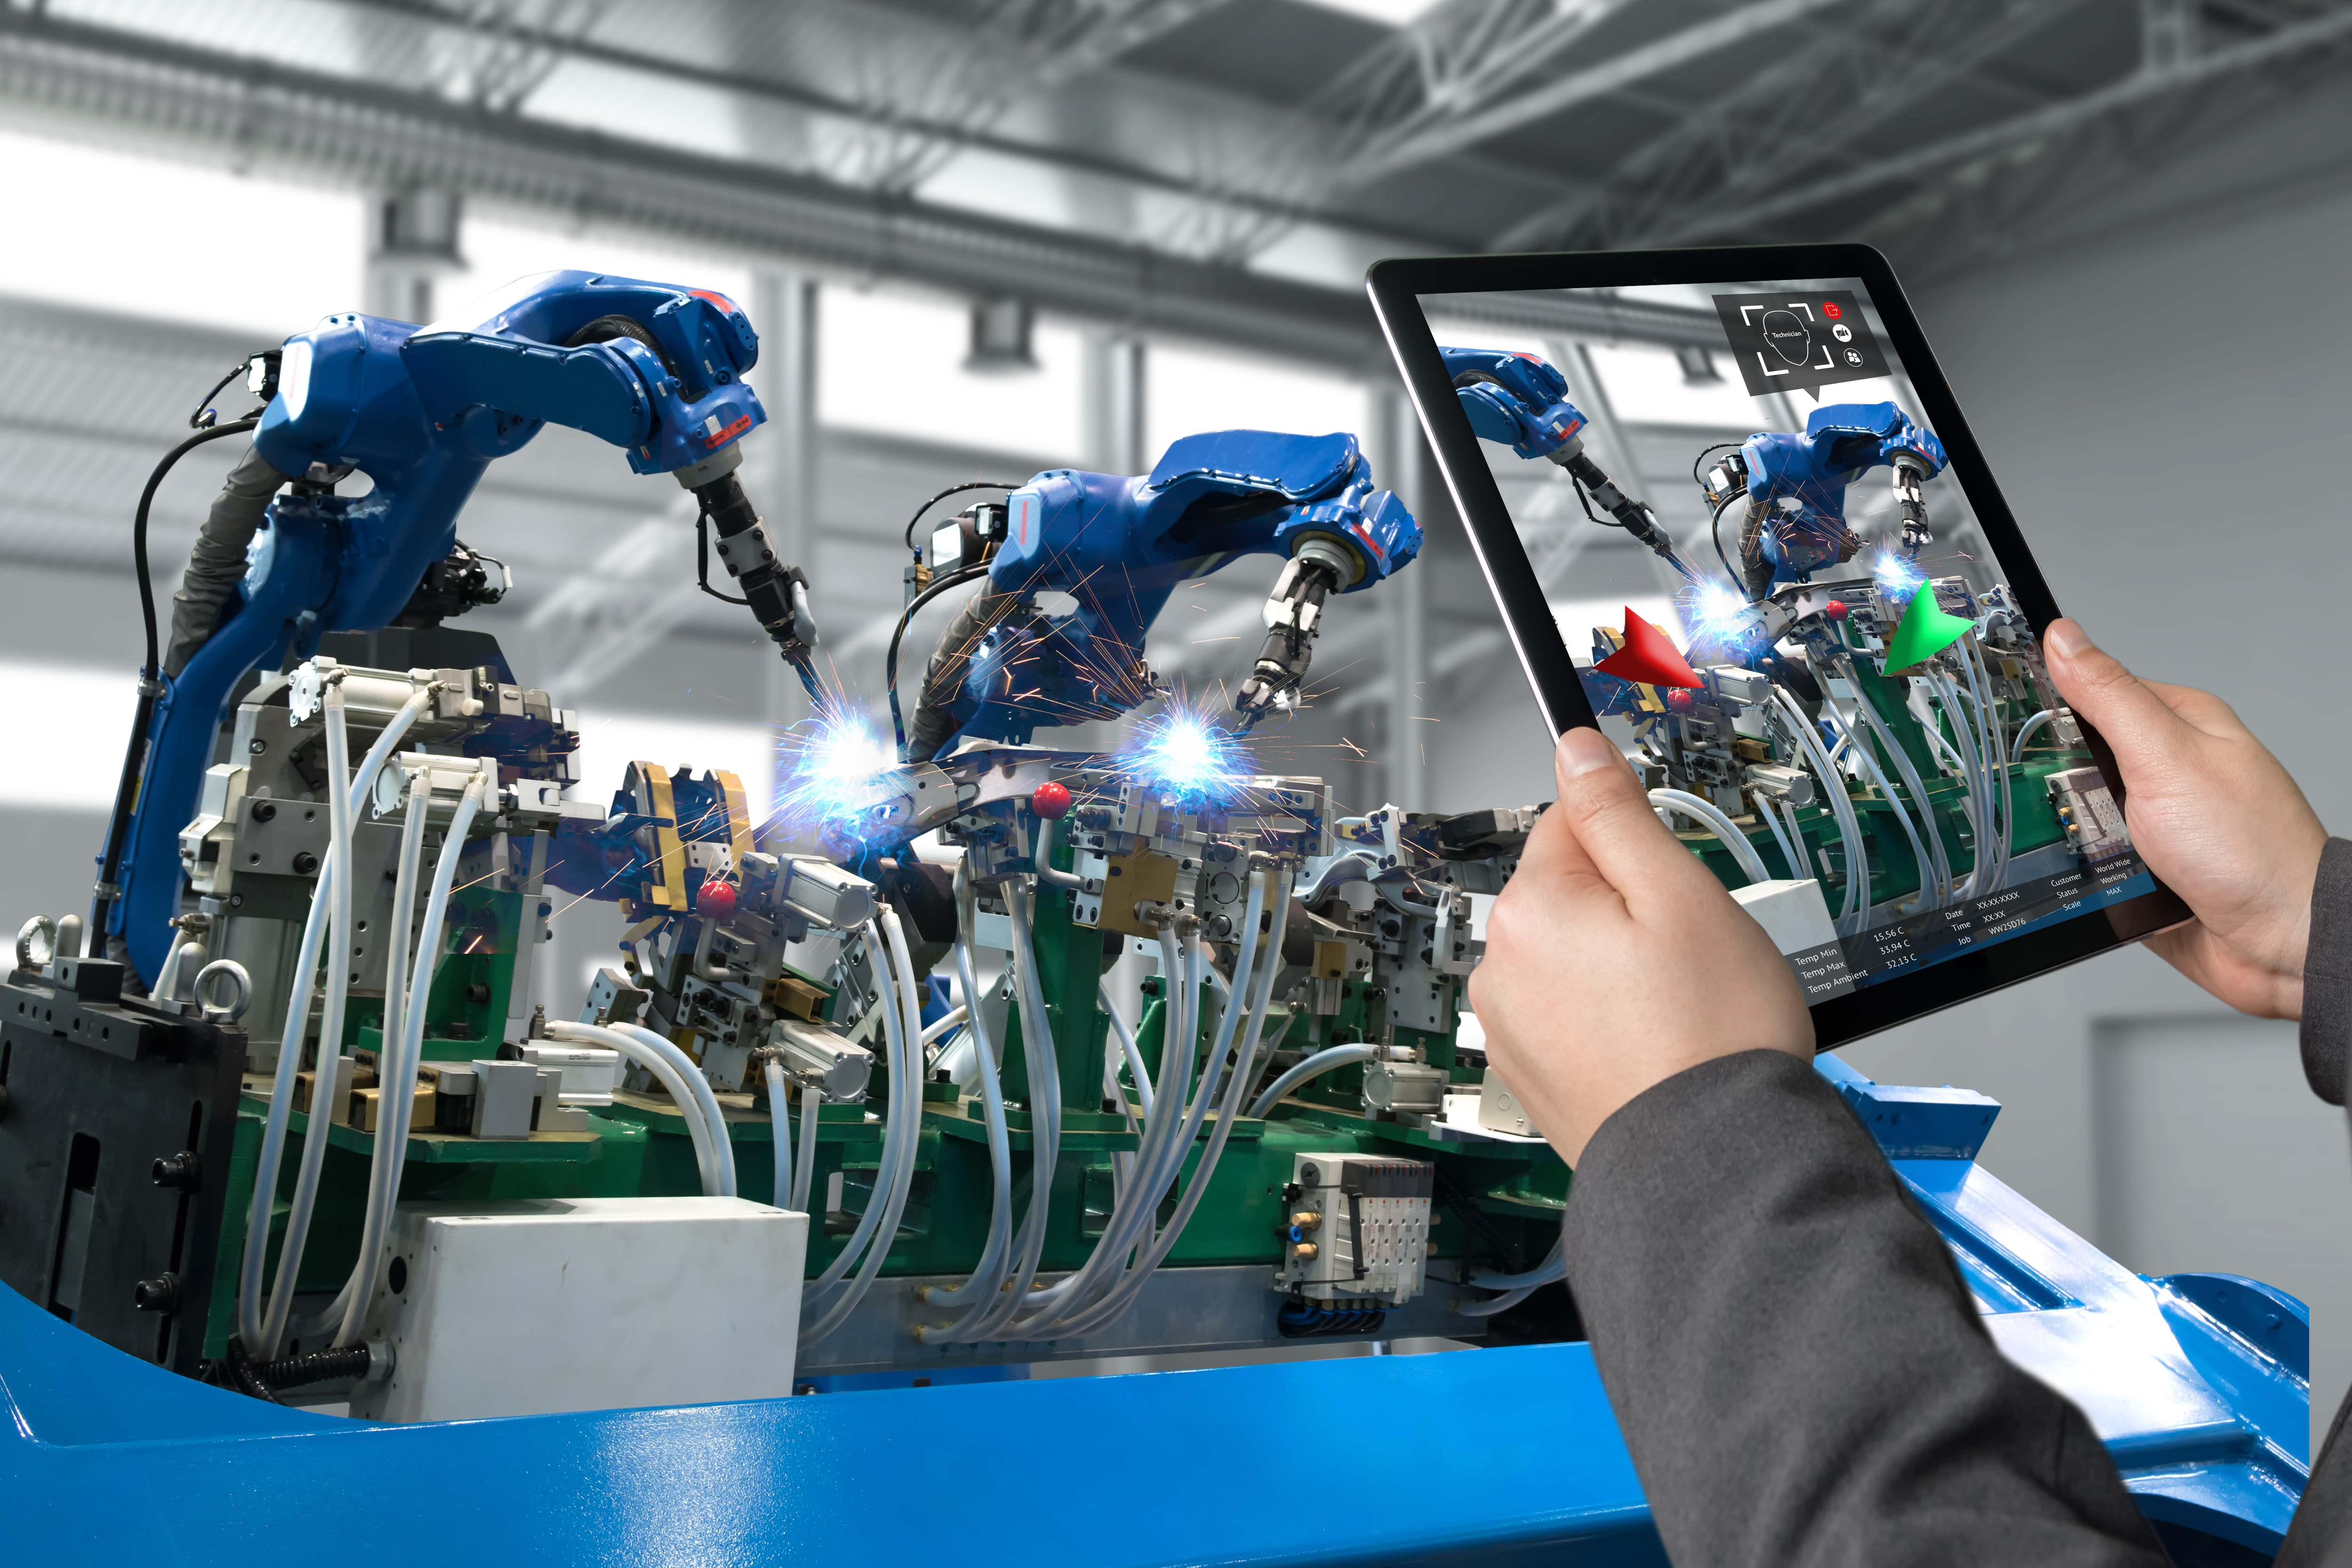 Cross-technology communication in the Internet of Things significantly simplified